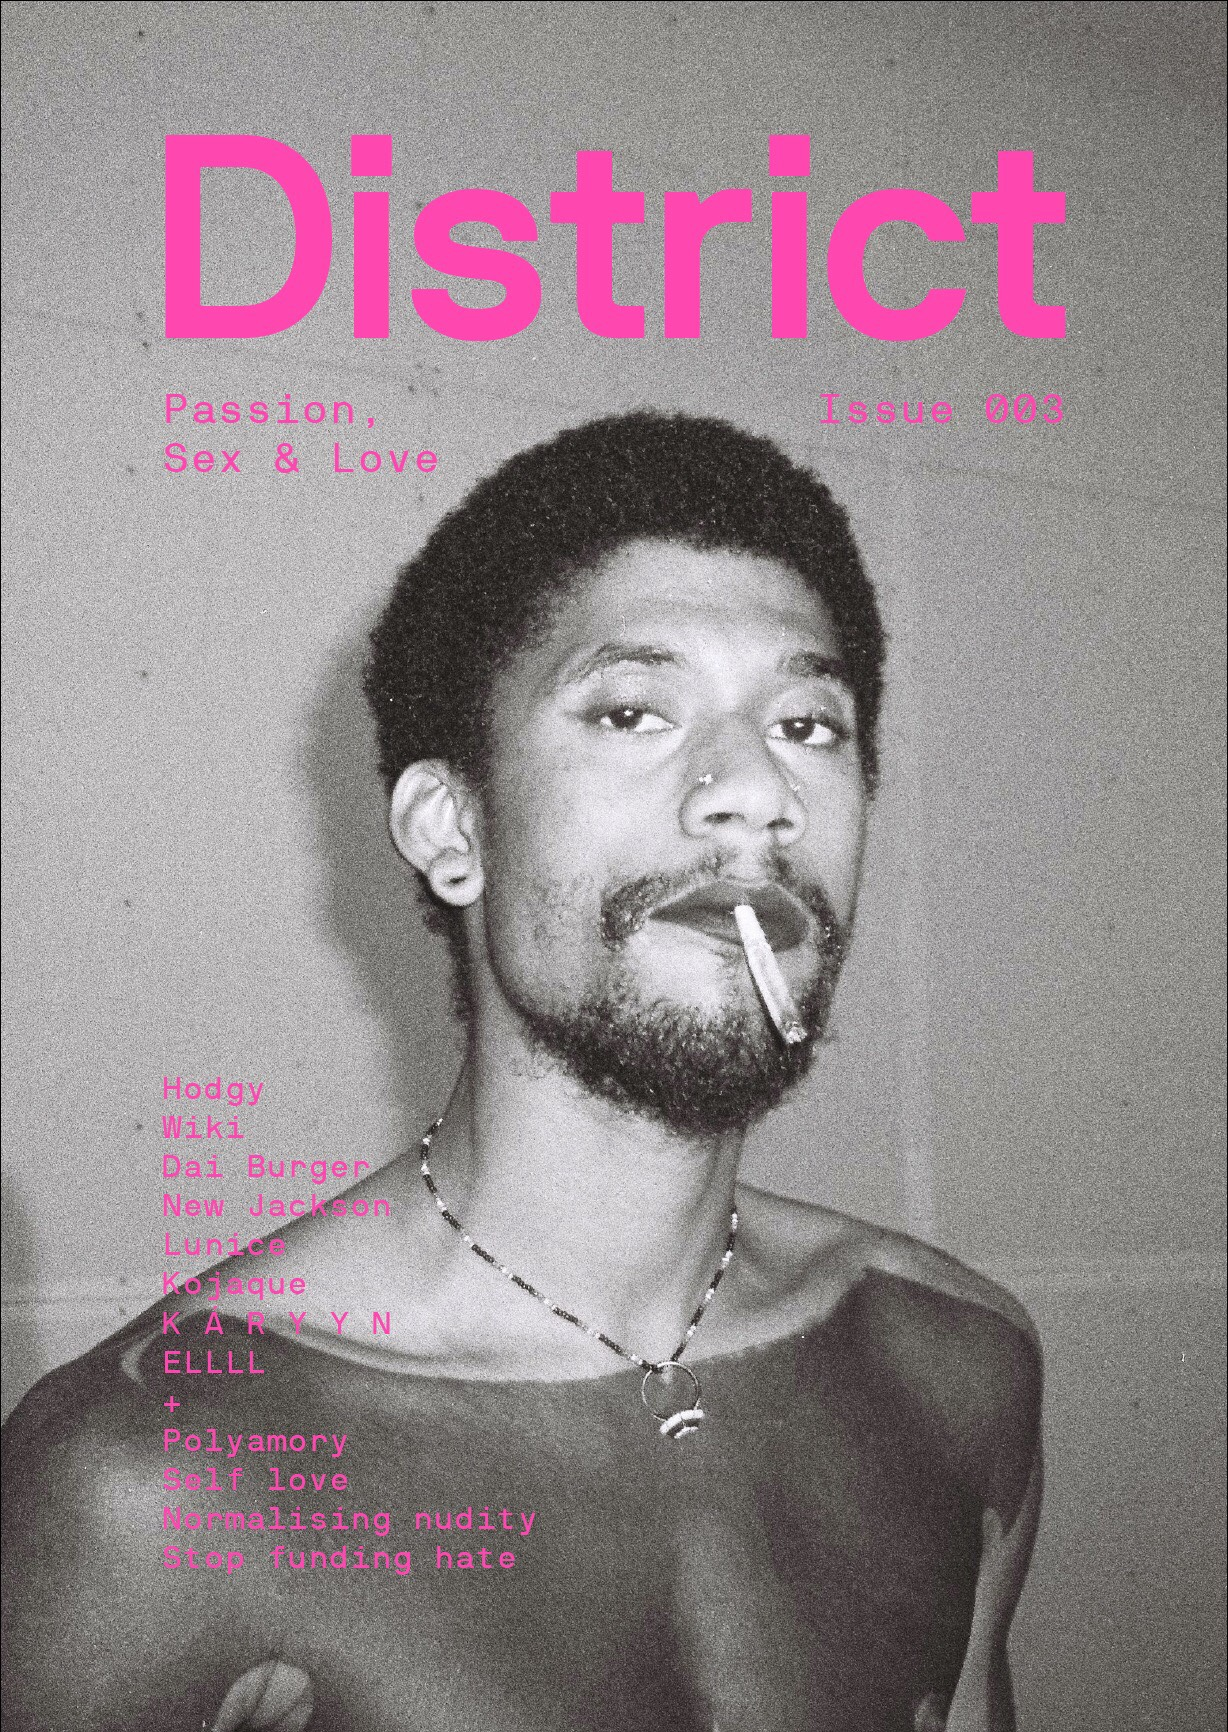 HODGY BEATS, DISTRICT MAGAZINE ISSUE 003, COVER